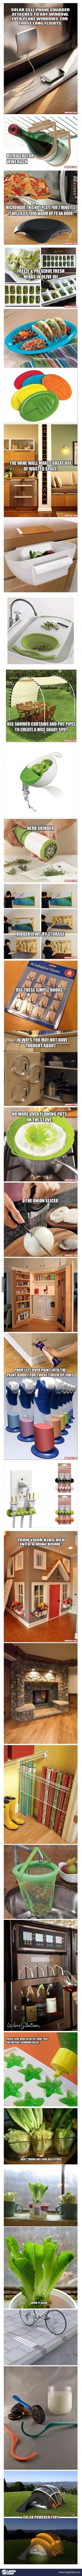 Seriously!?!  Amazing Ideas full of awesome.